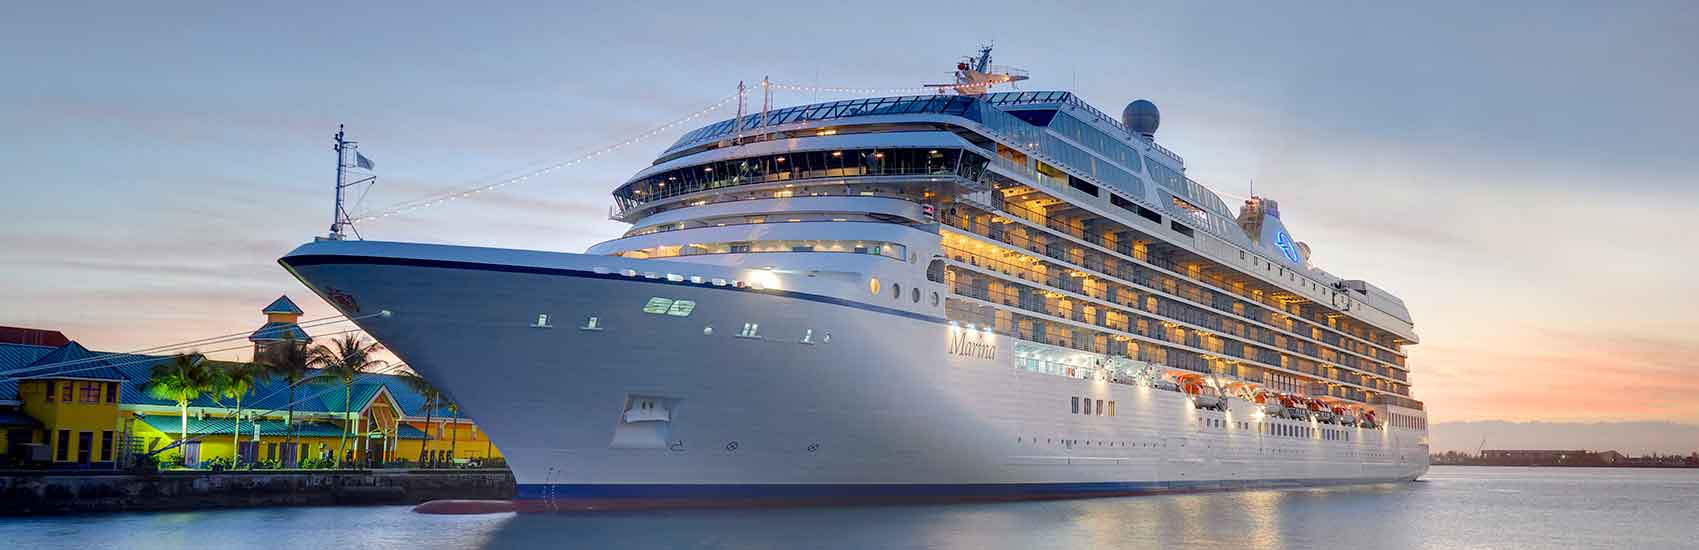 Exclusive Virtuoso Offer with Oceania Cruises 0